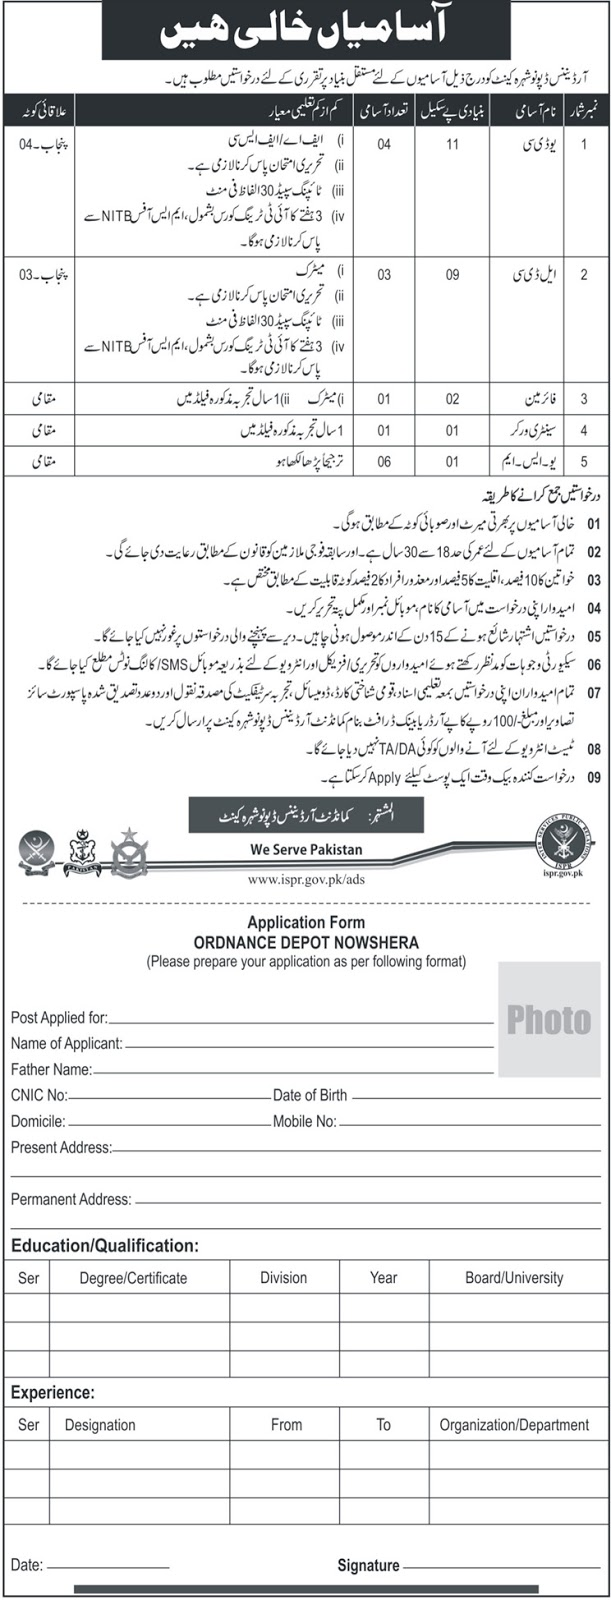 Jobs in Pakistan Army 2018 at Ordnance Deport Nowshera Cantt